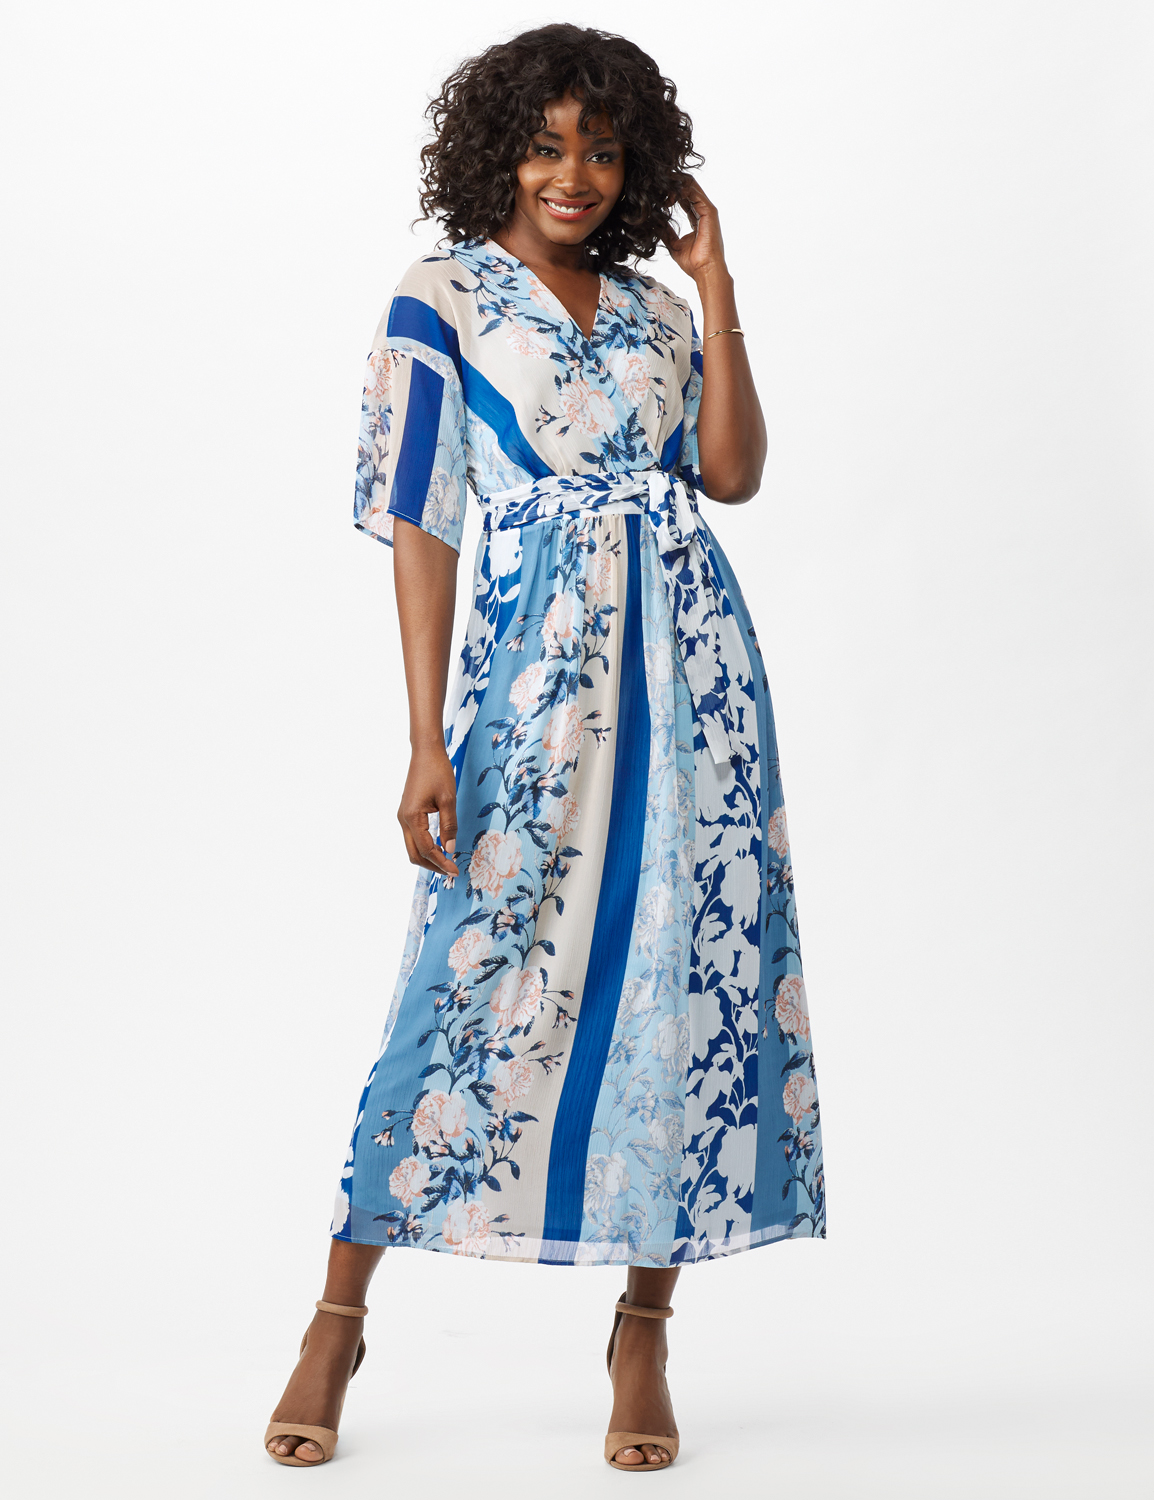 Floral Stripe Patio Dress -Sky Blue/Multi - Front